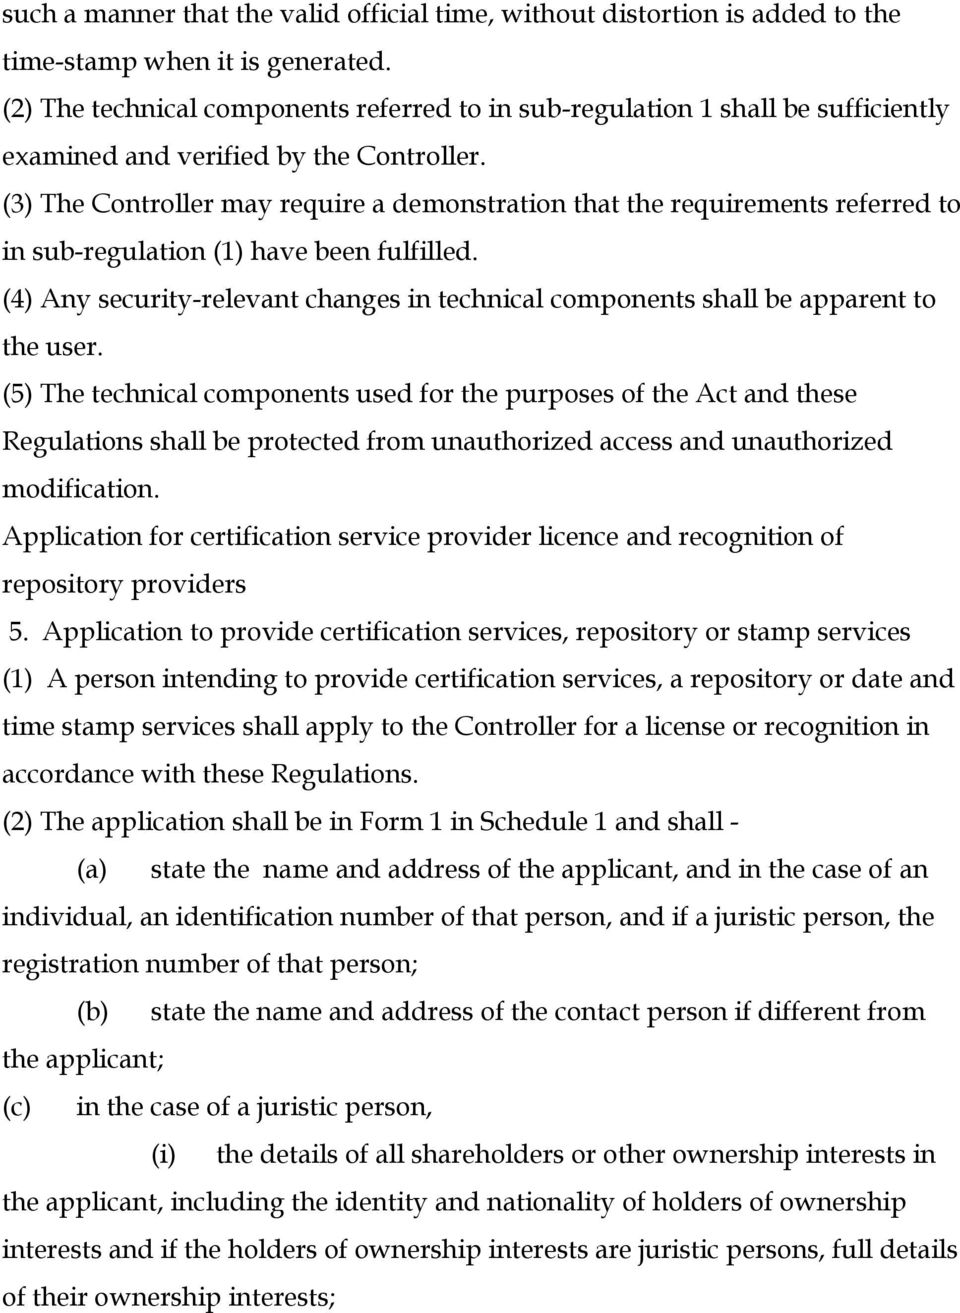 (3) The Controller may require a demonstration that the requirements referred to in sub-regulation (1) have been fulfilled.